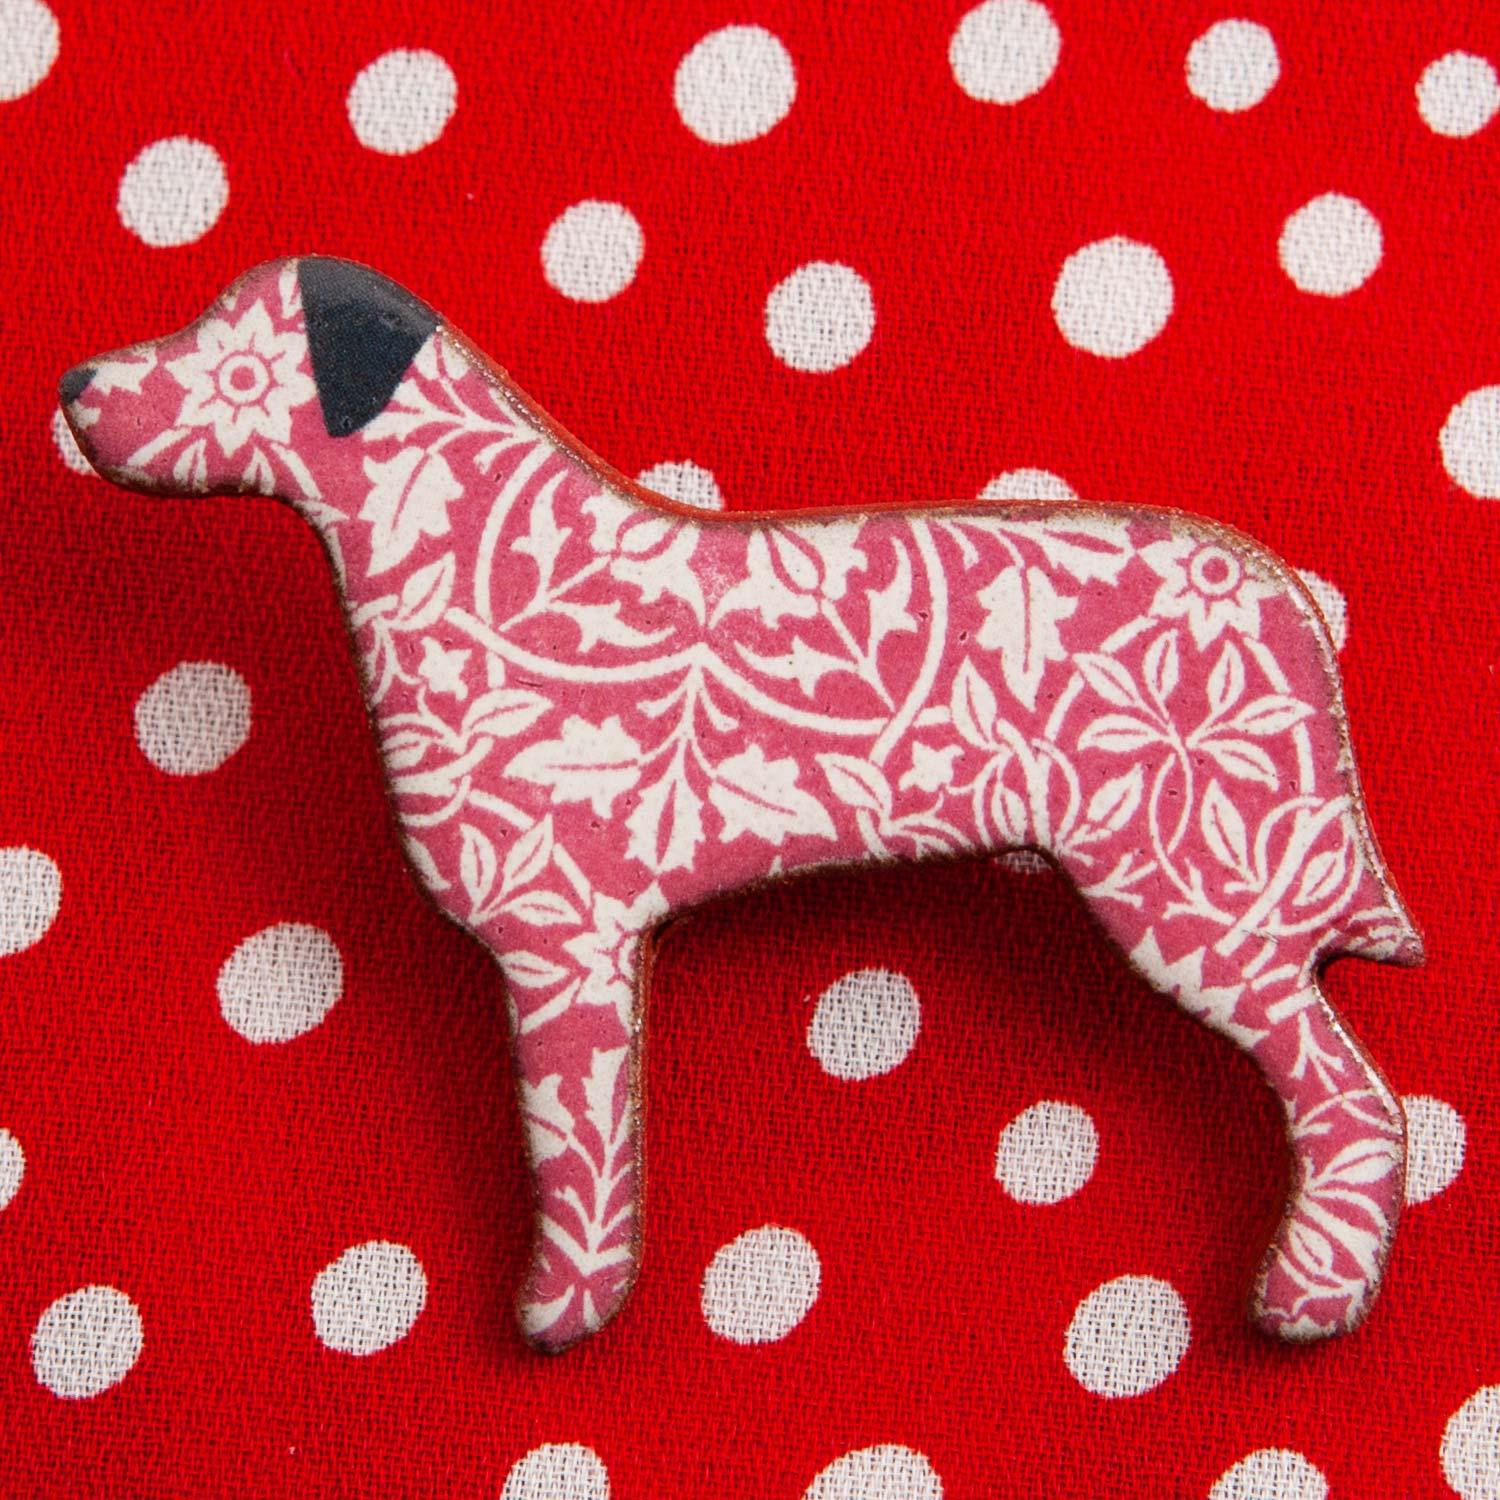 Dog Lover Gifts available at Dog Krazy Gifts – Ceramic Red William Morris Large Breed Brooch by Mary Goldberg of Stockwell Ceramics, Just Part Of Our Collection Of Dog Themed Gifts, Available At www.dogkrazygifts.co.uk